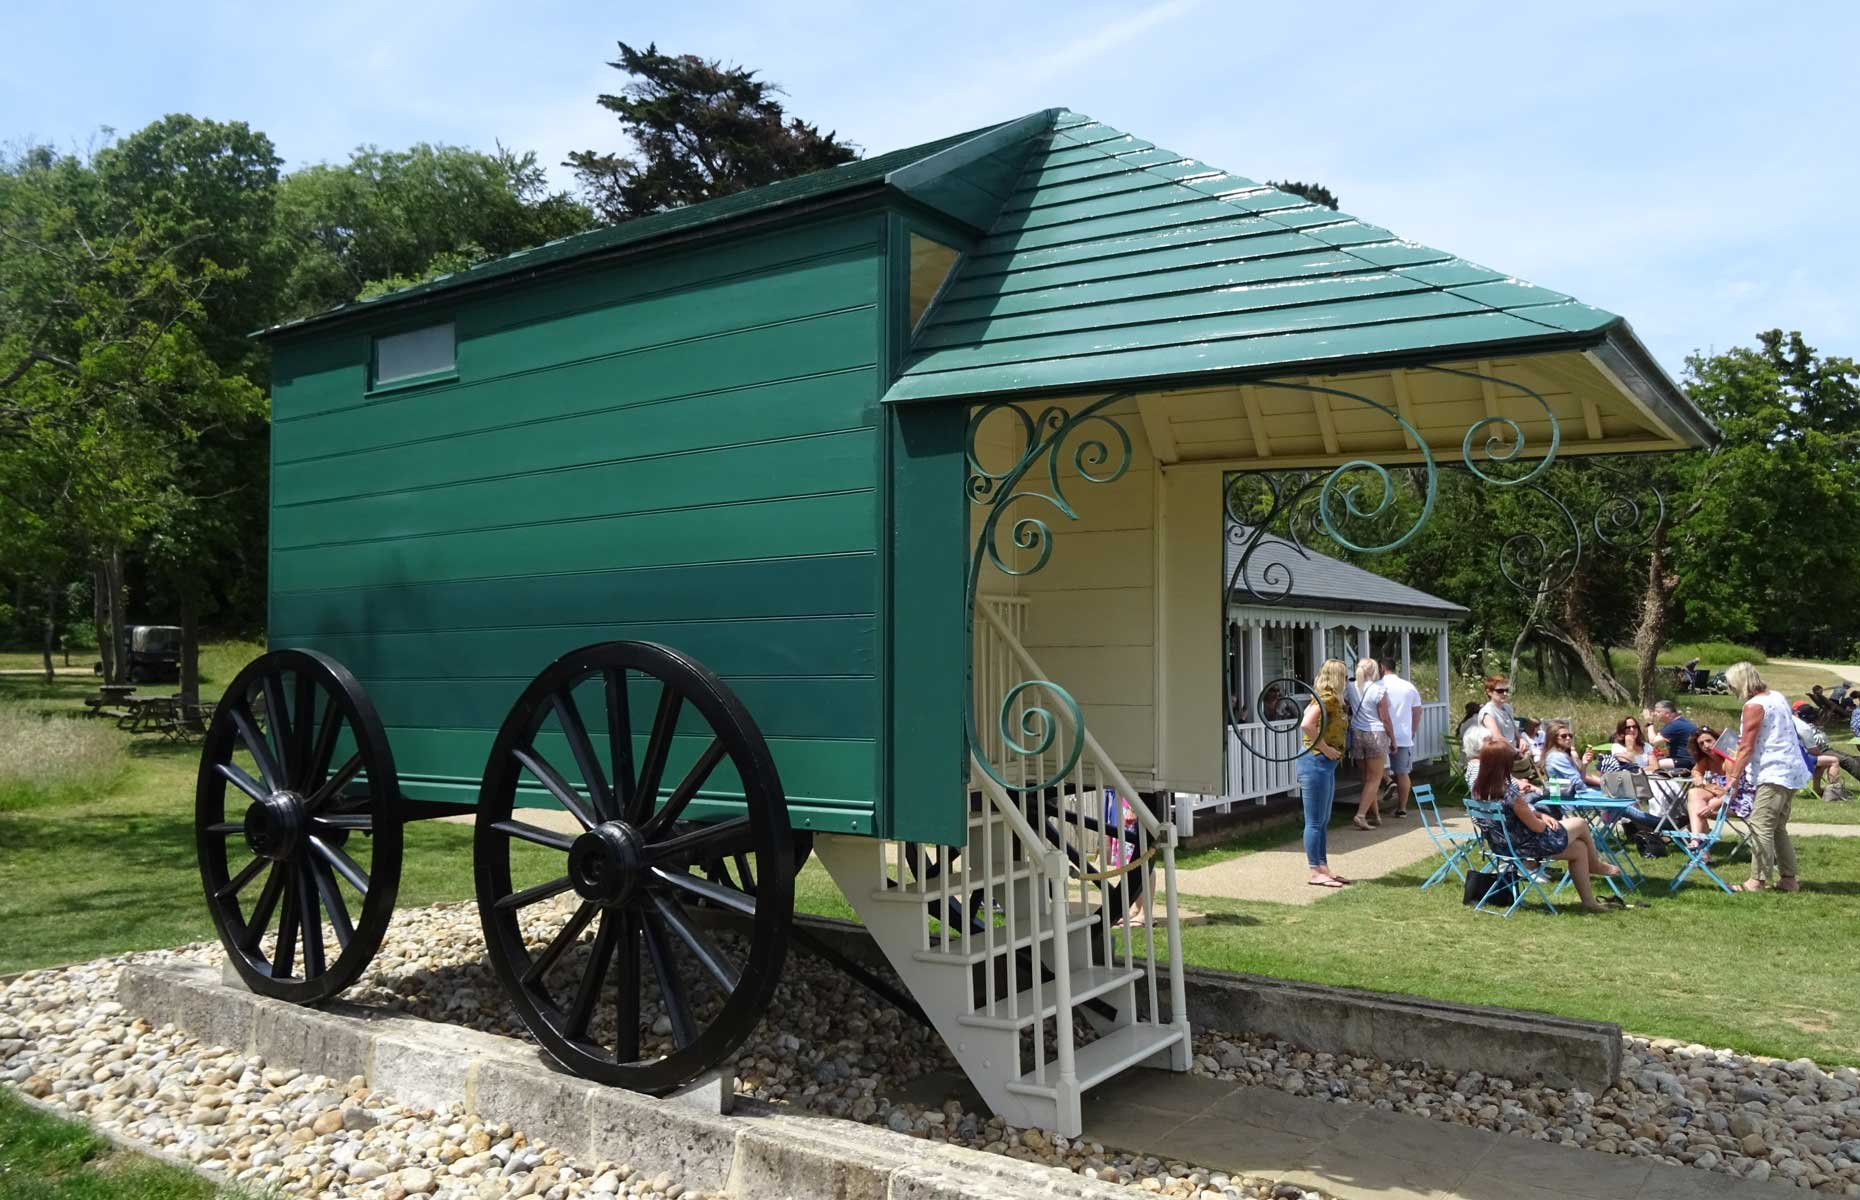 Queen Victoria's bathing machine at Osborne House, Isle of Wight